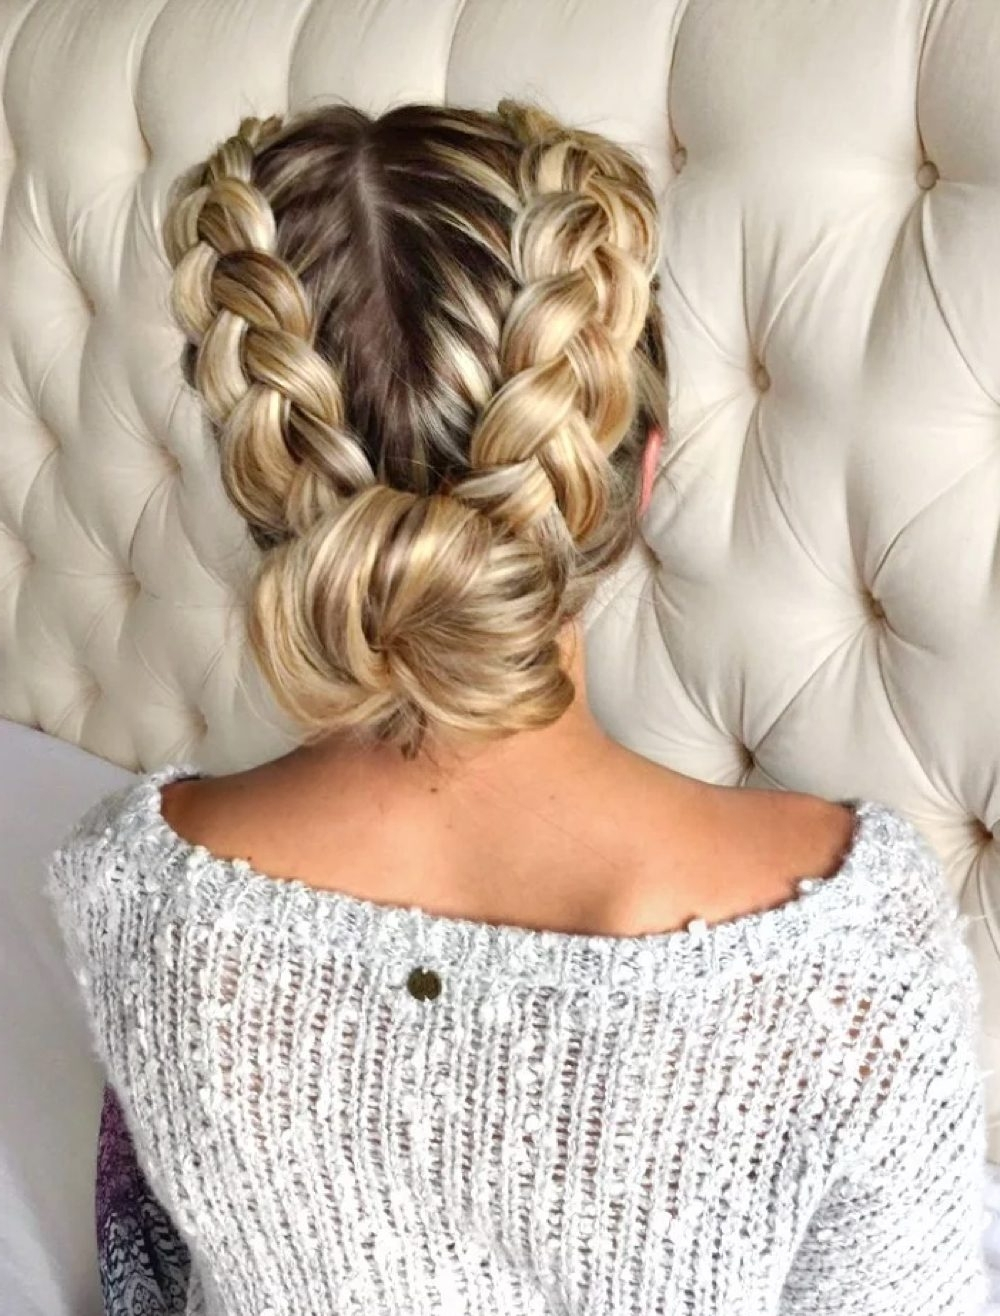 2017 Messy Double Braid Hairstyles Pertaining To 28 Gorgeous Braided Updo Ideas For  (View 2 of 15)